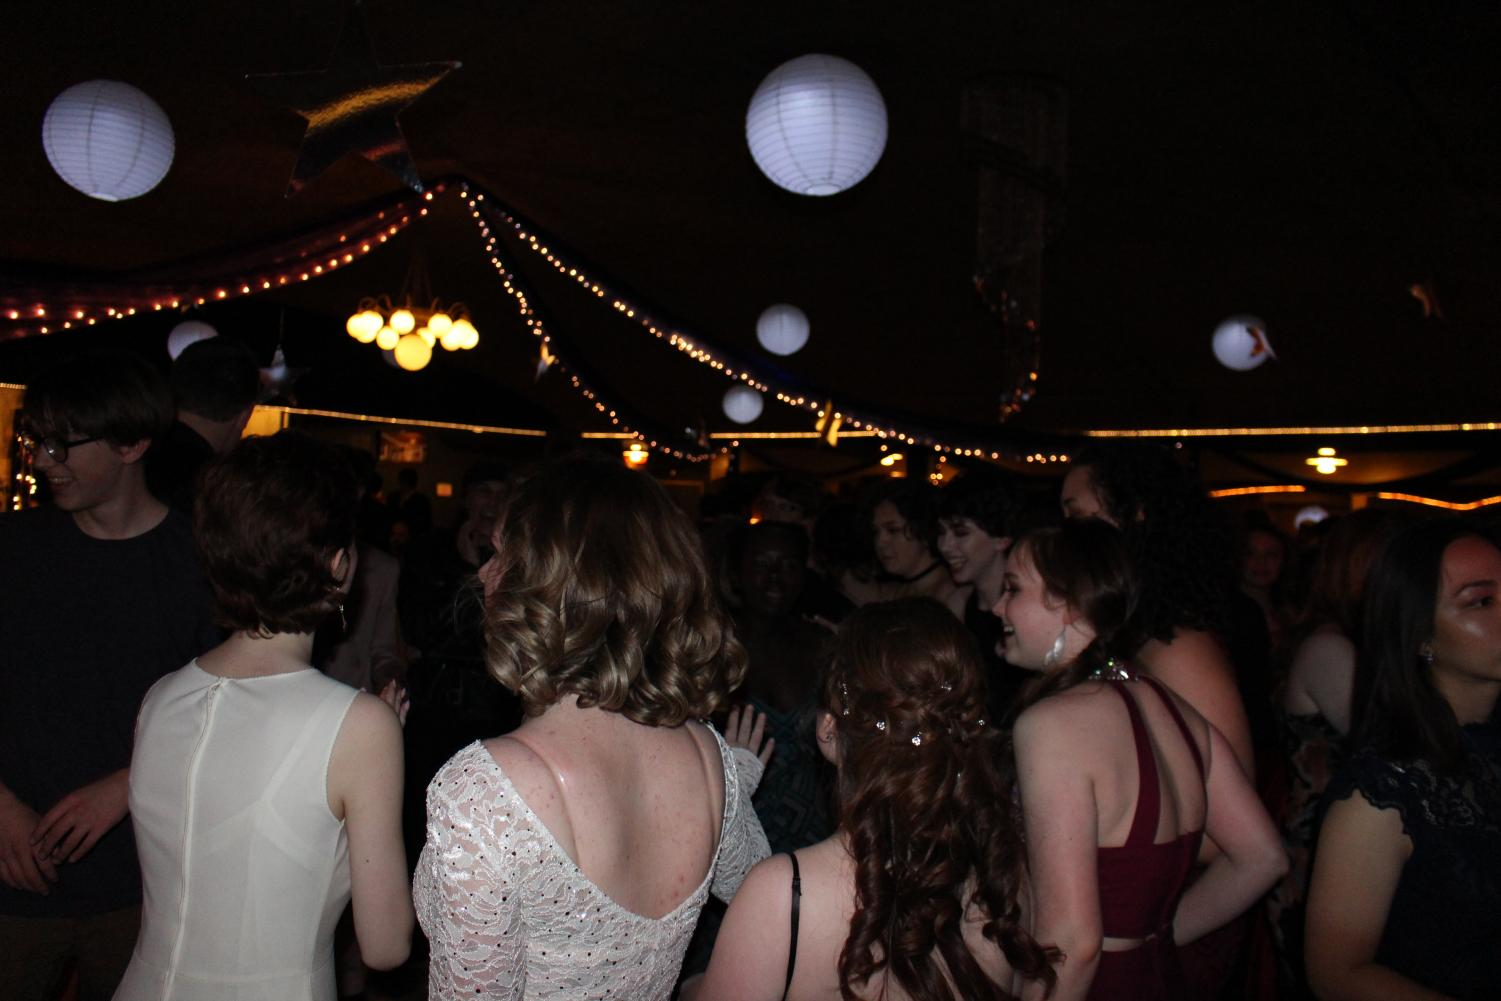 Students dance at the 2018 LHS Prom on April 14th, 2018 at the Pla Mor Ballroom. This year's prom is on Saturday, April 27th, 2019, which starts at 8:30 p.m. Photo by Denny Nelson